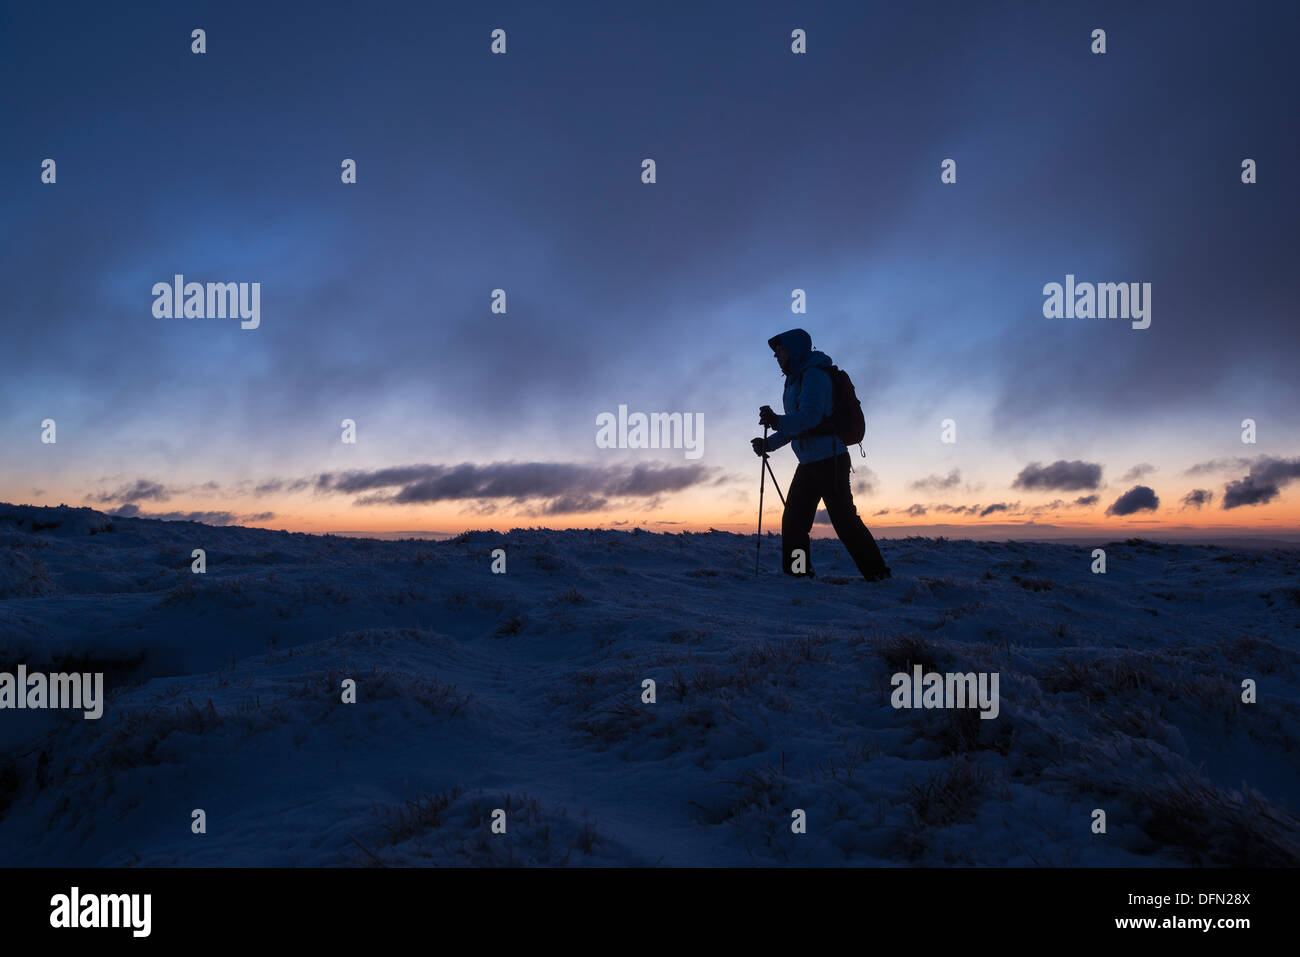 Silhouette of hiker on wintry summit of Corn Du at dawn, Brecon Beacons national park, Wales - Stock Image